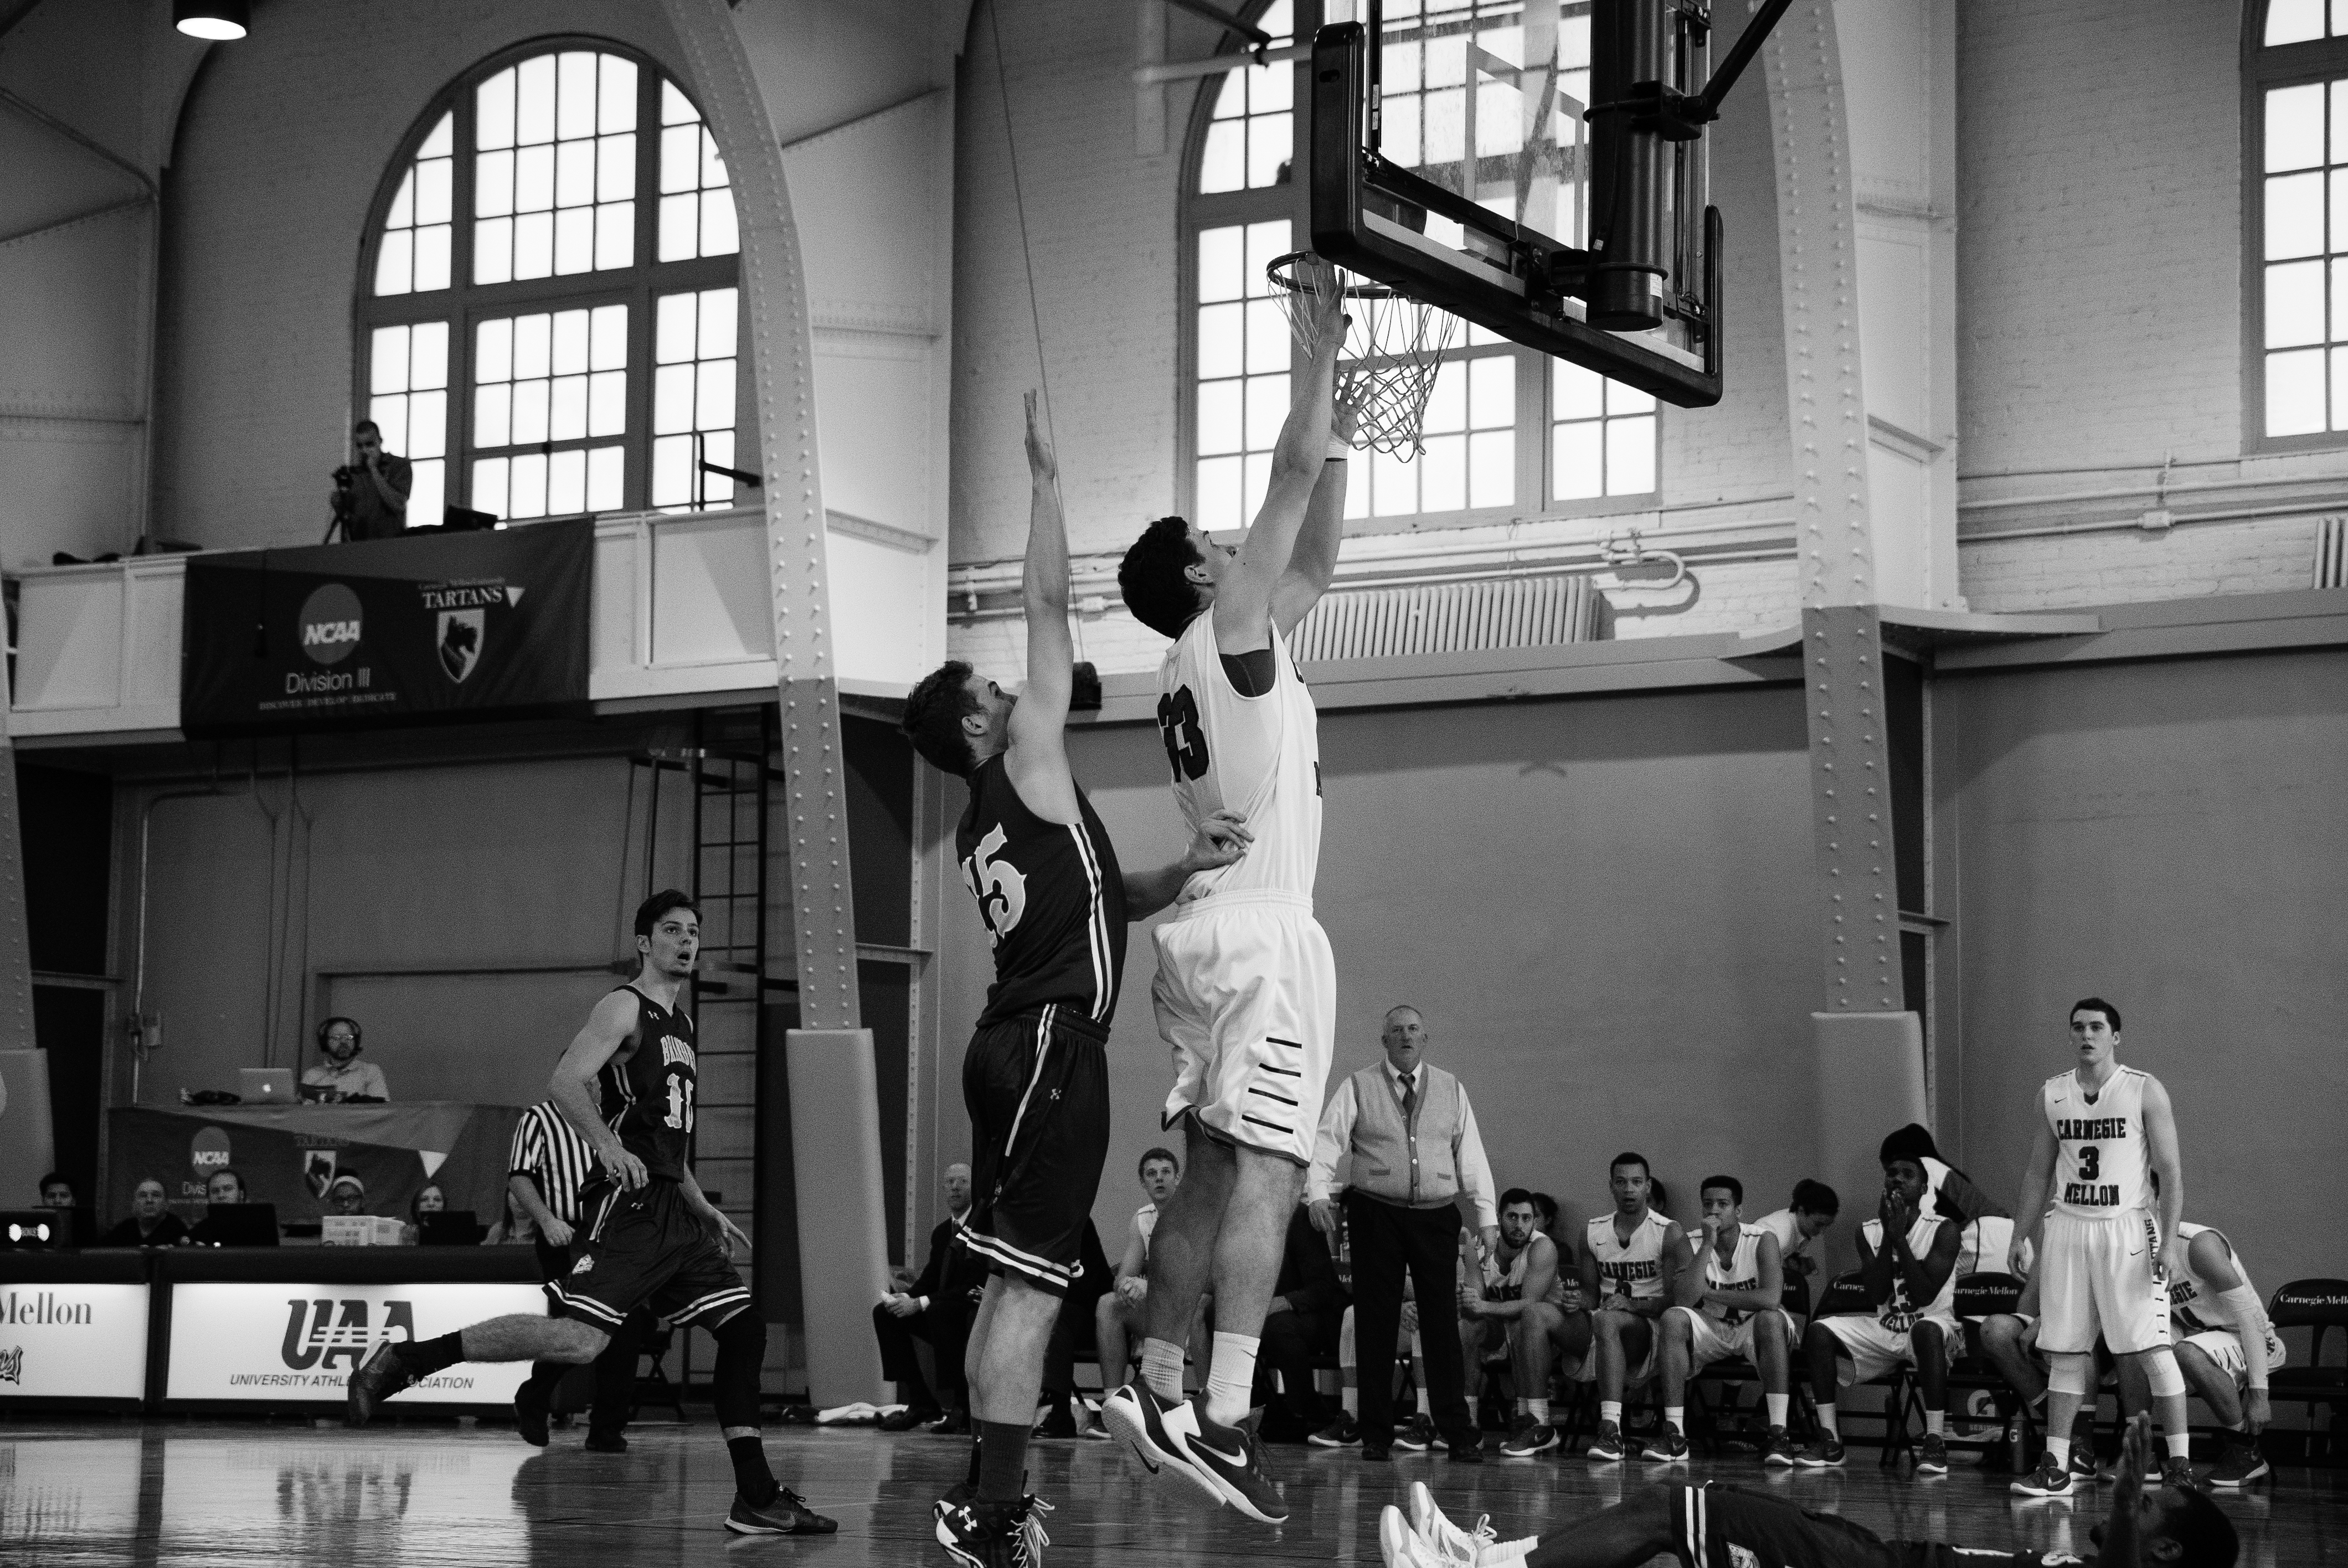 Junior center Chris Shkil beats a Brandeis defender on Saturday to make a lay up for his team and get the win. (credit: Brandon Hong/Photo Editor)